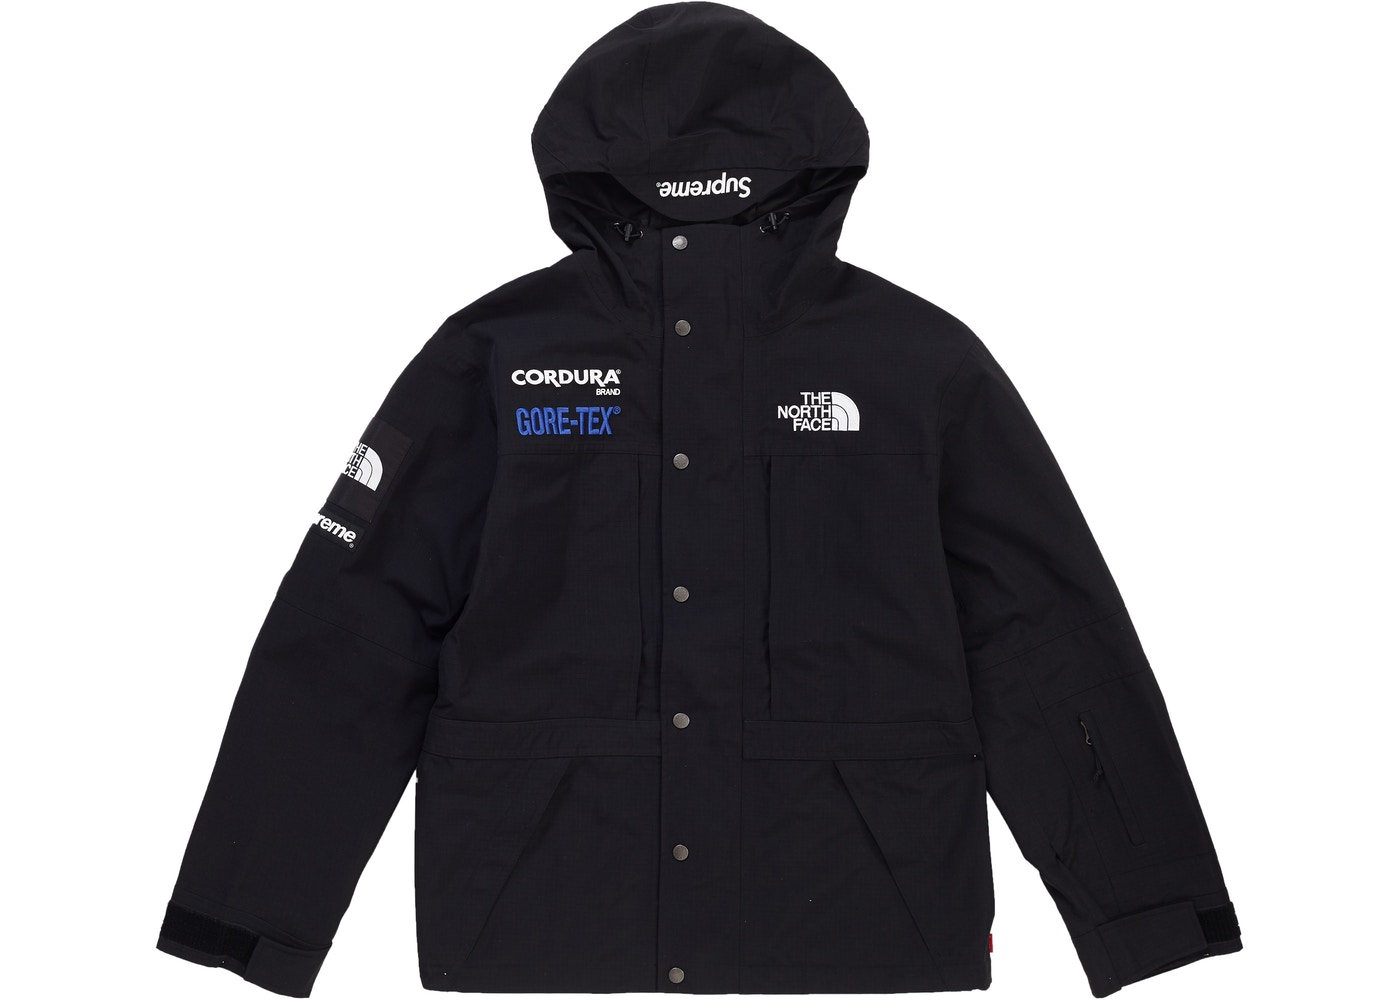 6935b84cb632 Supreme The North Face Expedition (FW18) Jacket Black - FW18